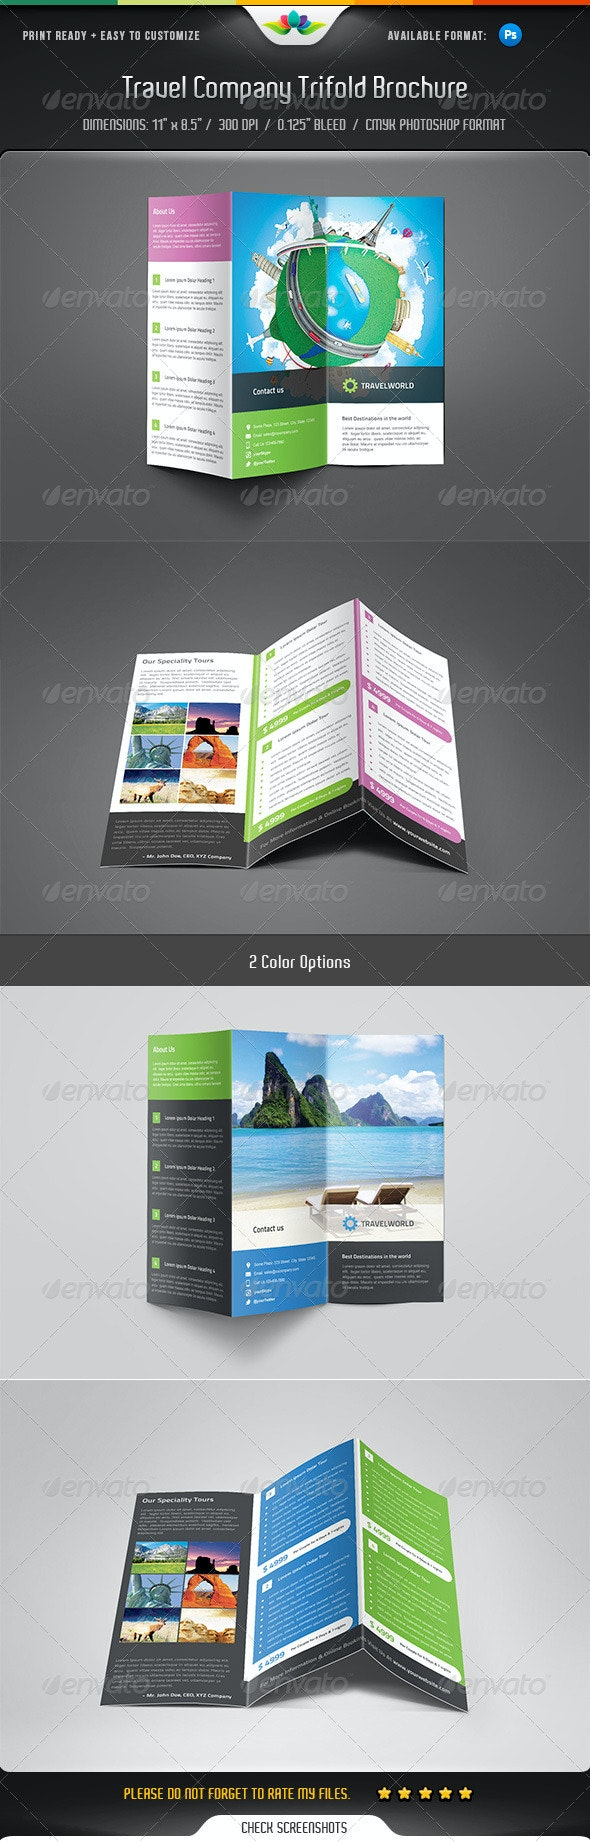 Travel Company Trifold Brochure  - Corporate Brochures